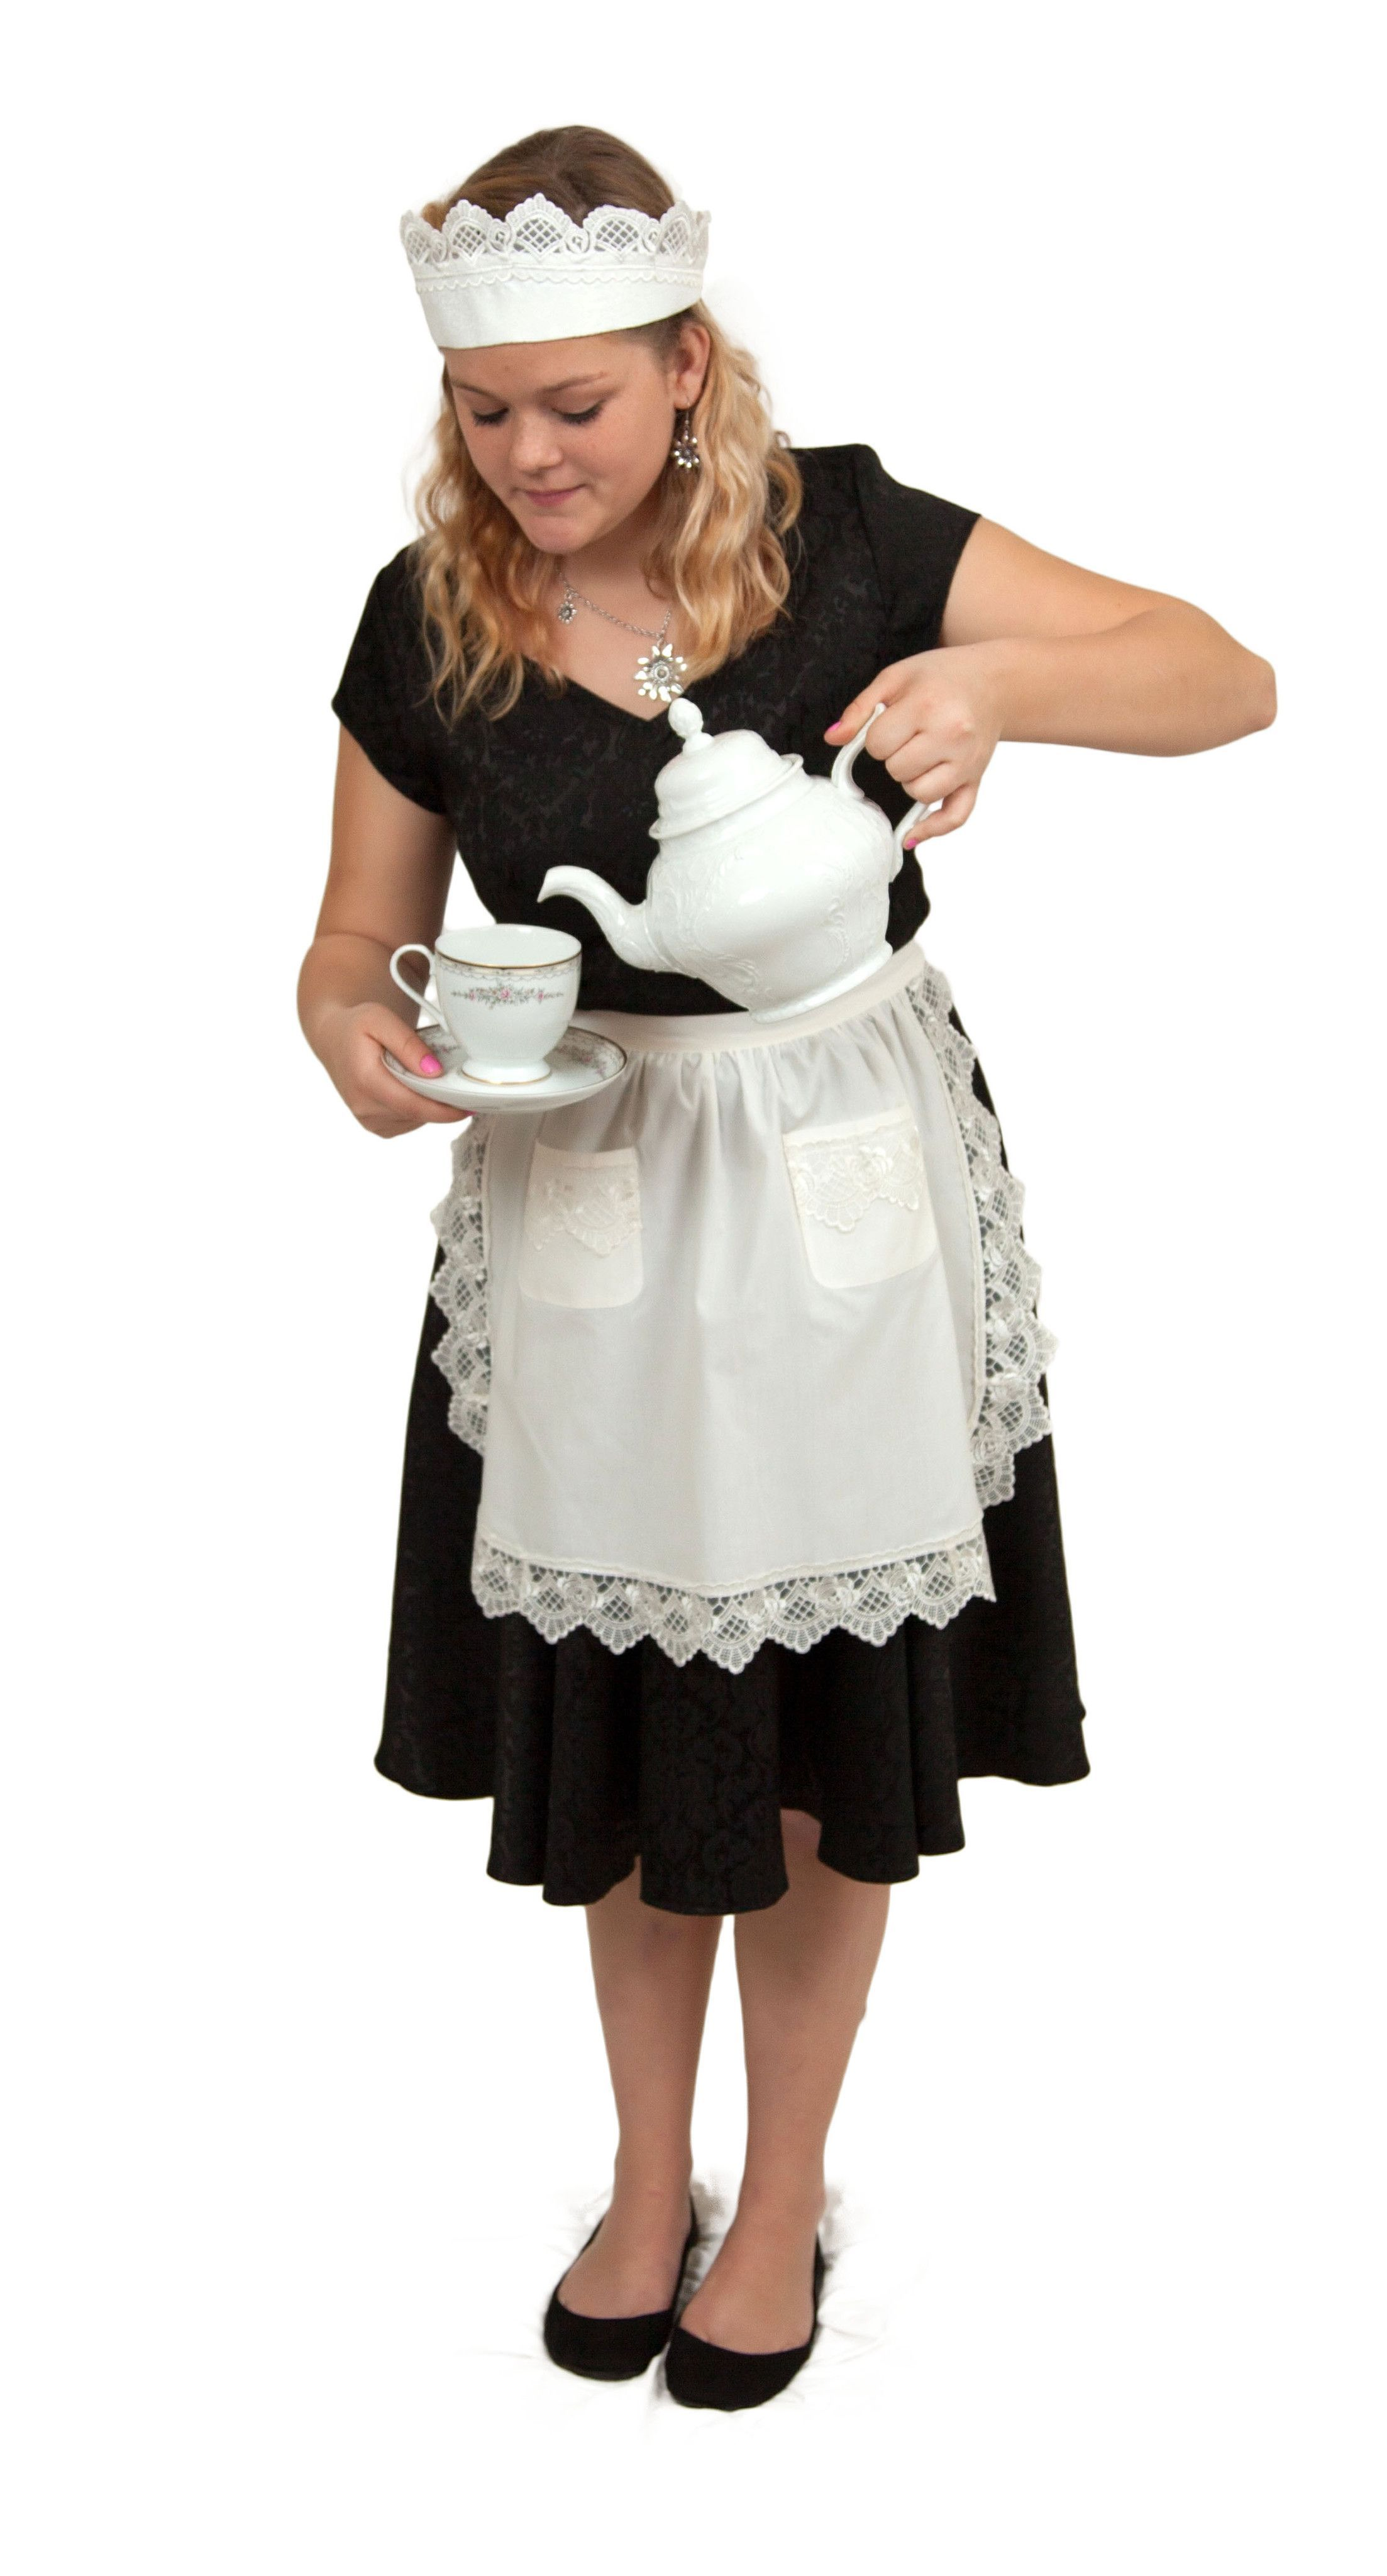 Lace Maid Costume Hat French maid costume, White lace